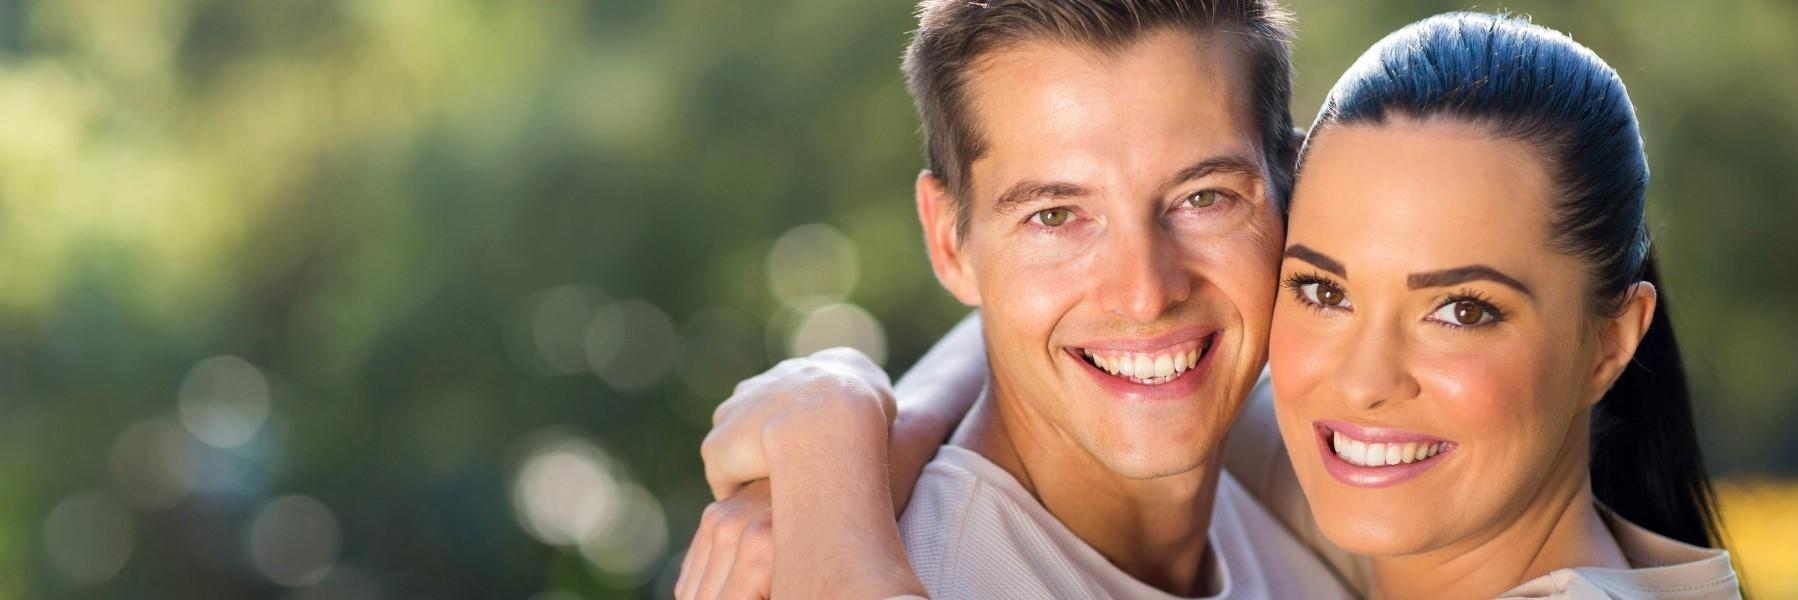 Restorative Dentistry in Springfield MO